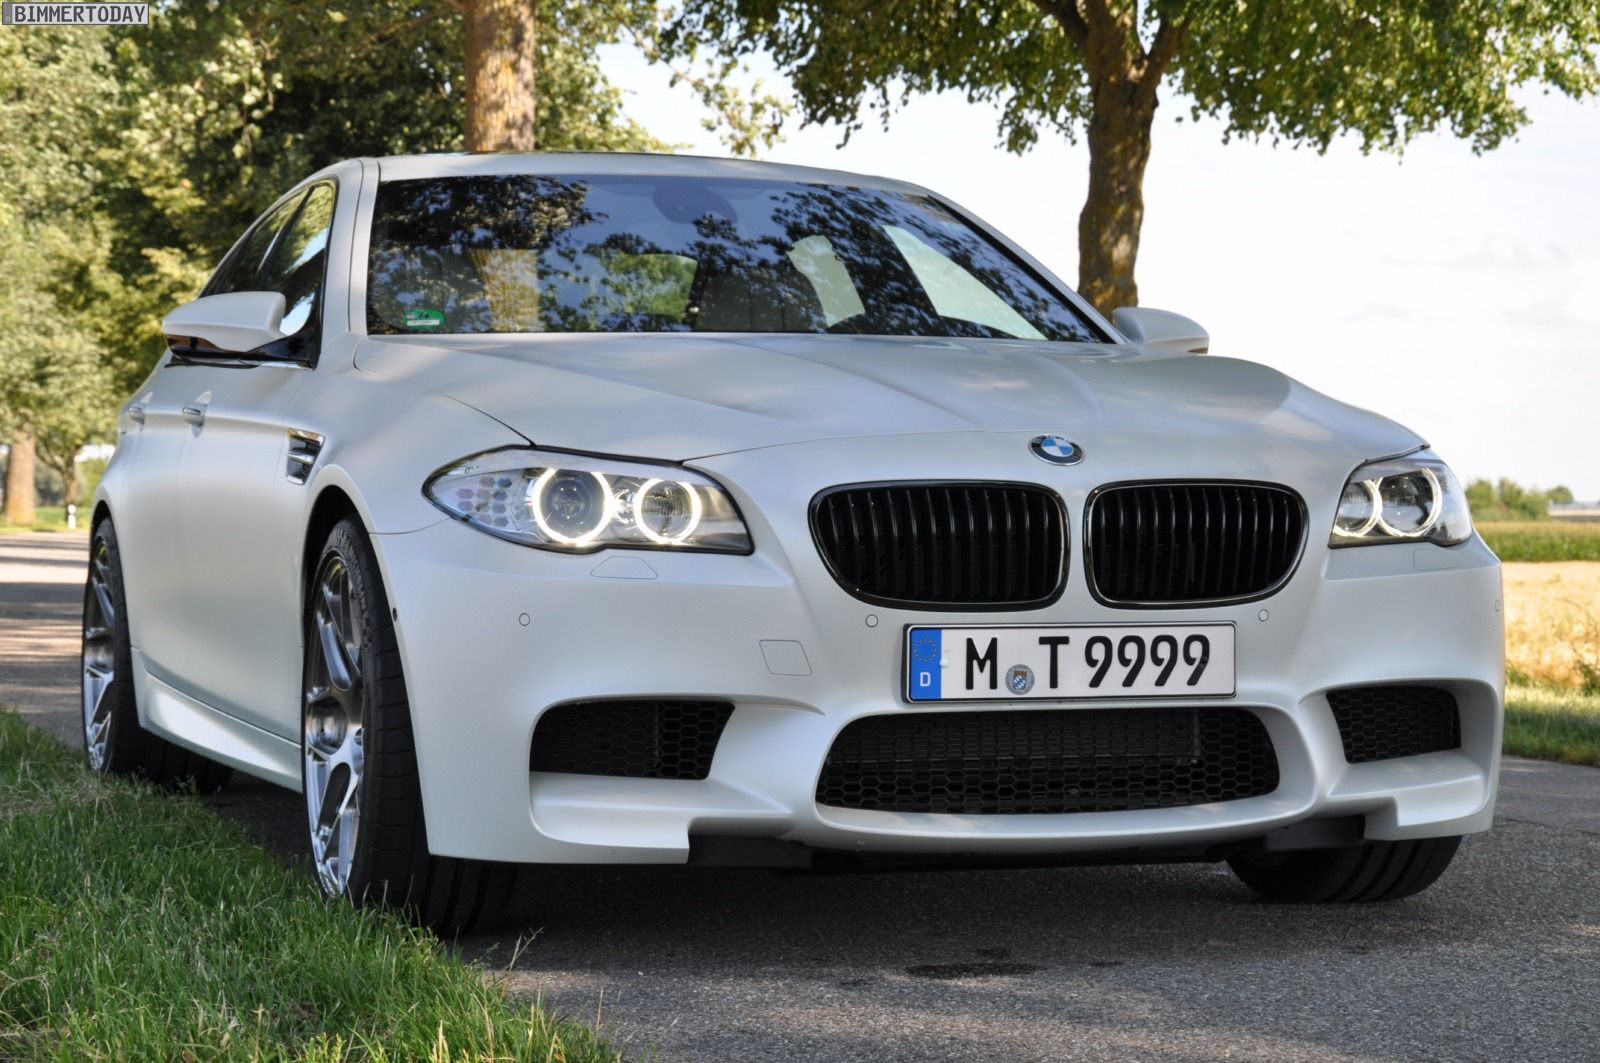 Coupe Series 2012 bmw m5 review F10 BMW M5 Frozen White | BMW | Pinterest | BMW M5, BMW and Cars